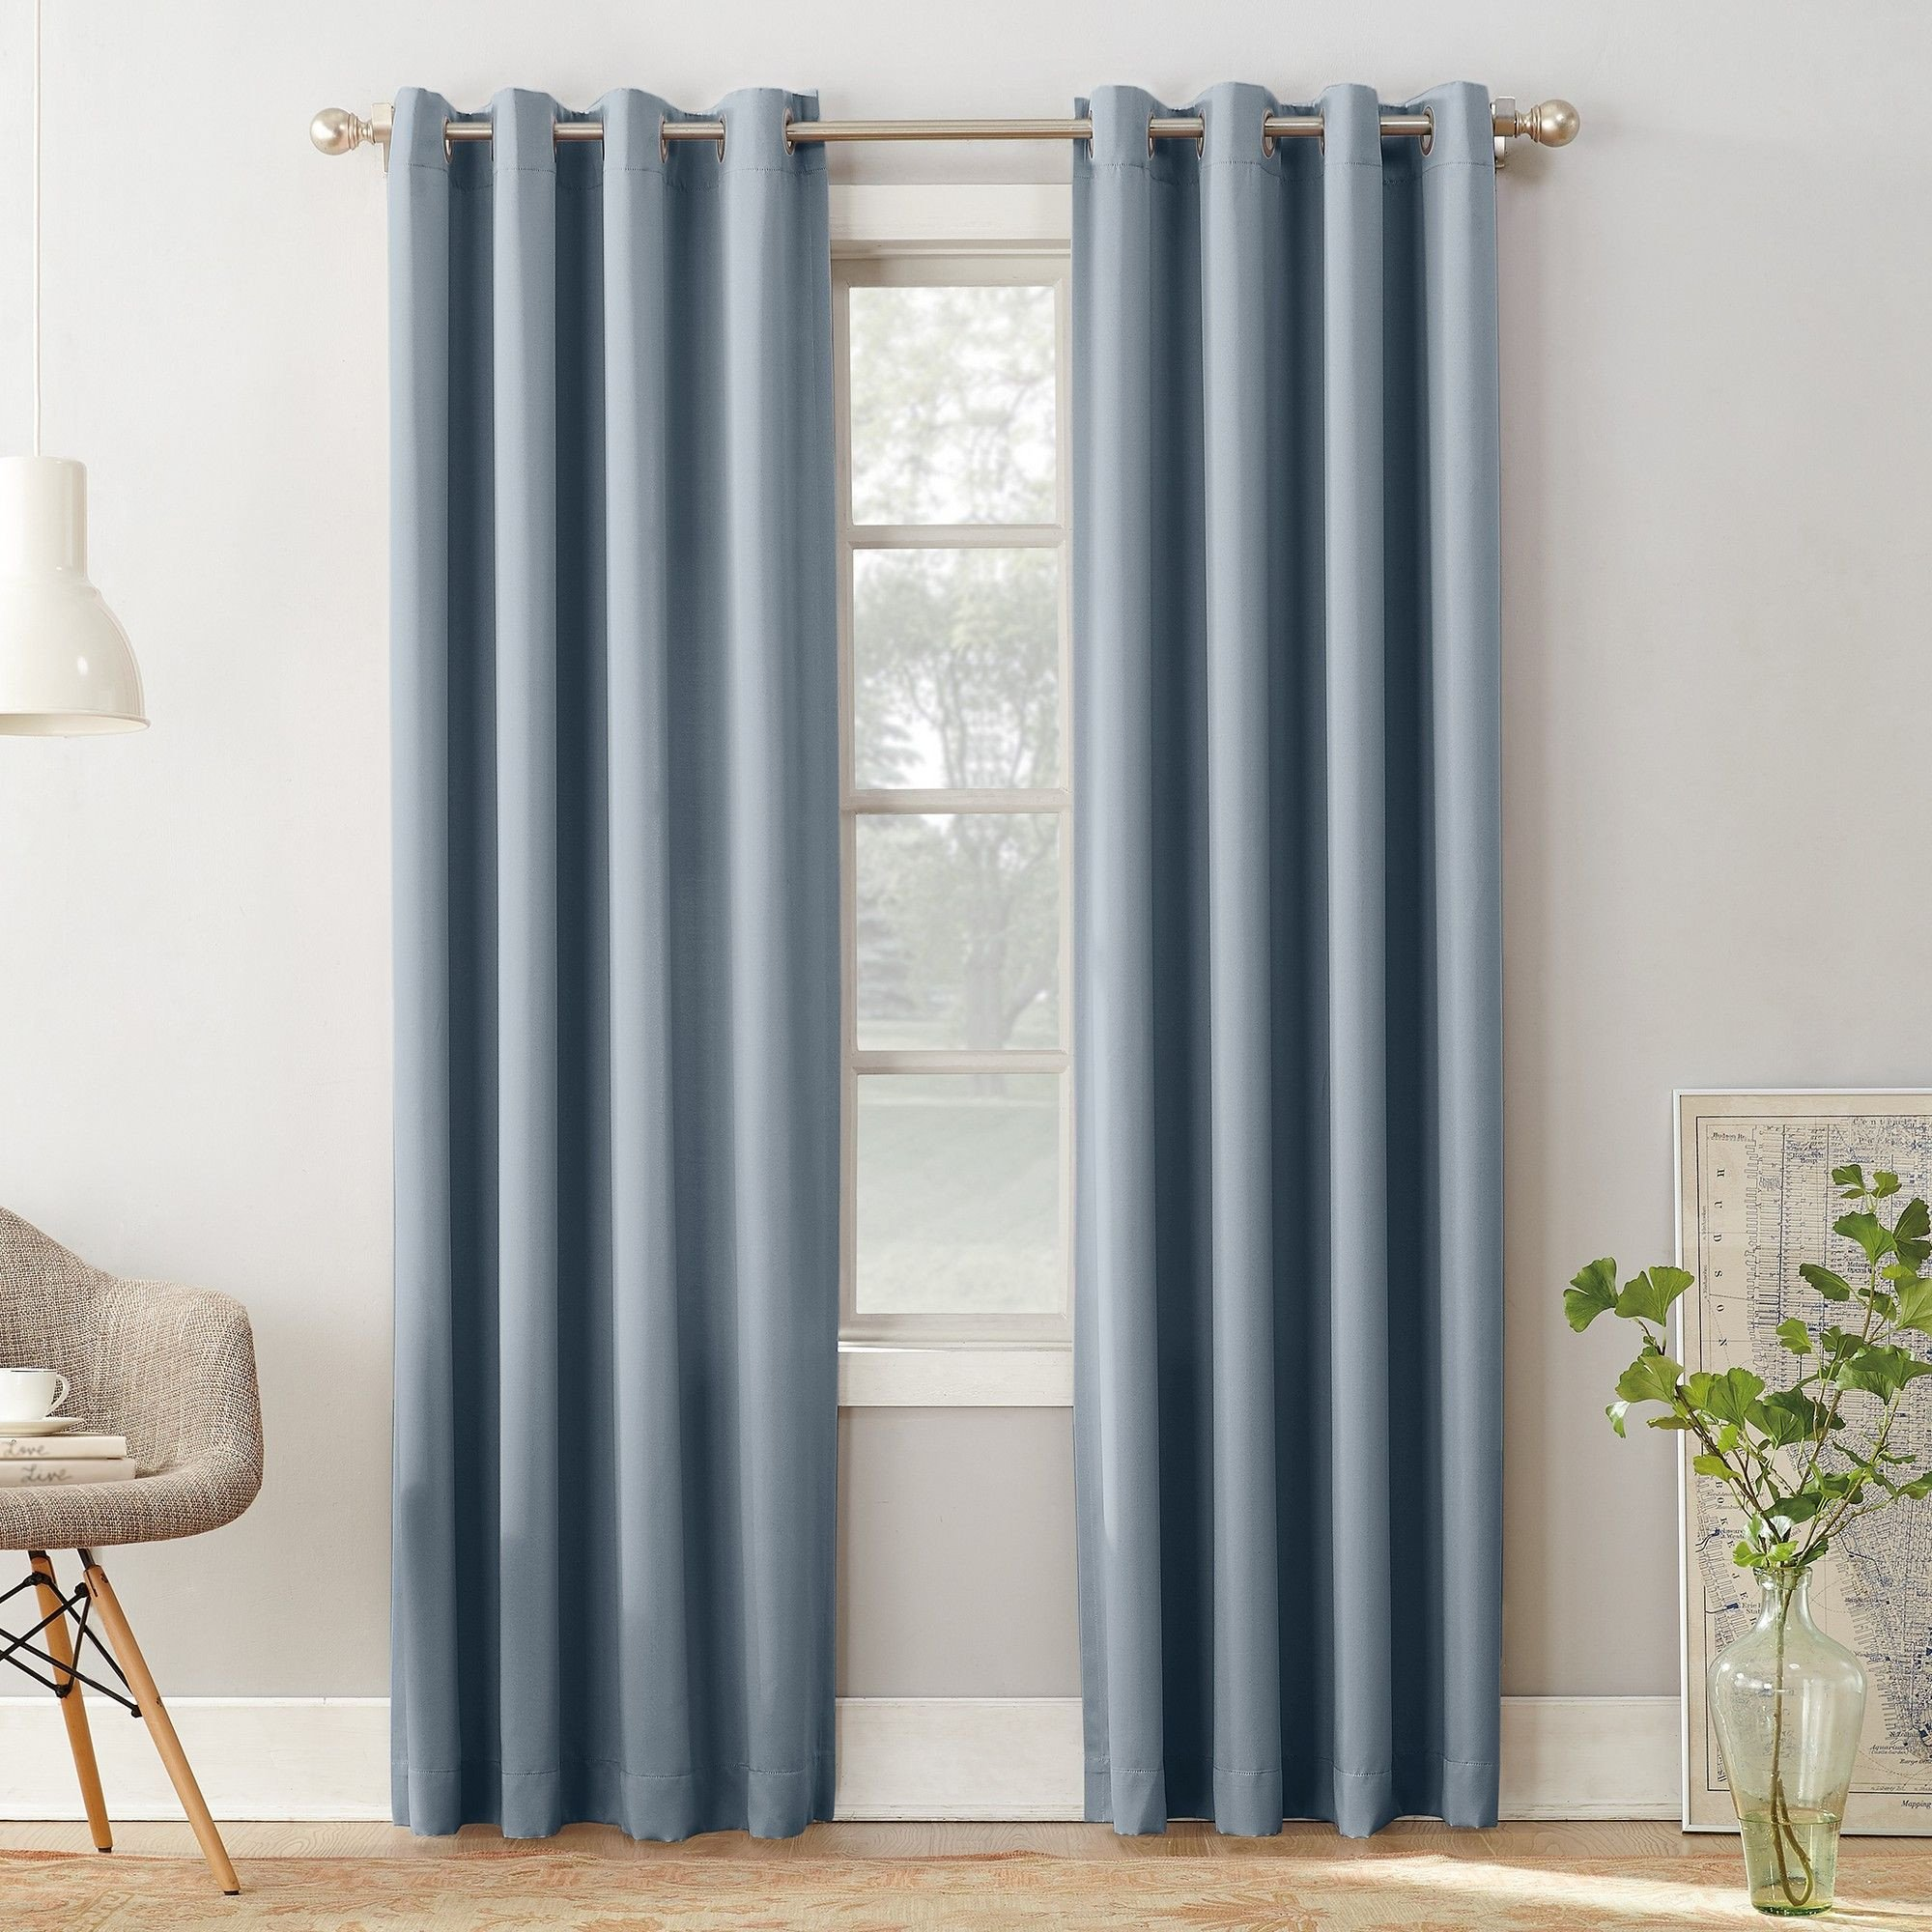 Grey Curtains for Bedroom New Seymour Room Darkening Grommet Curtain Panel Vintage Blue 54